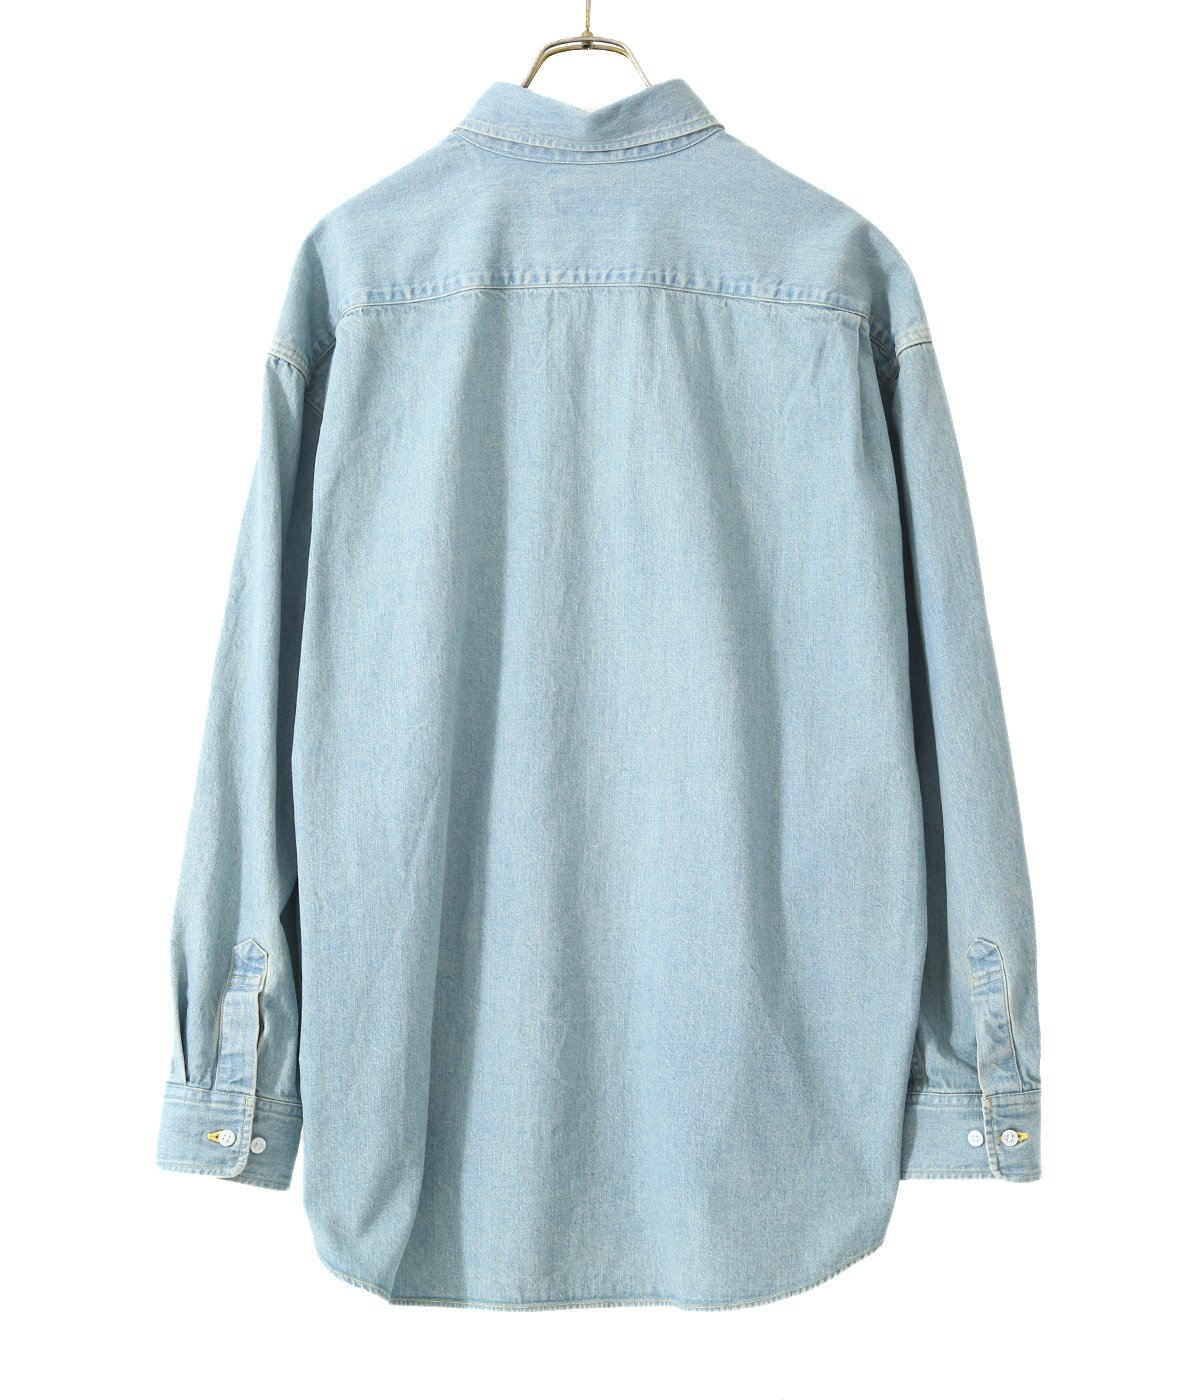 【予約】10oz. DENIM BIG SHIRT